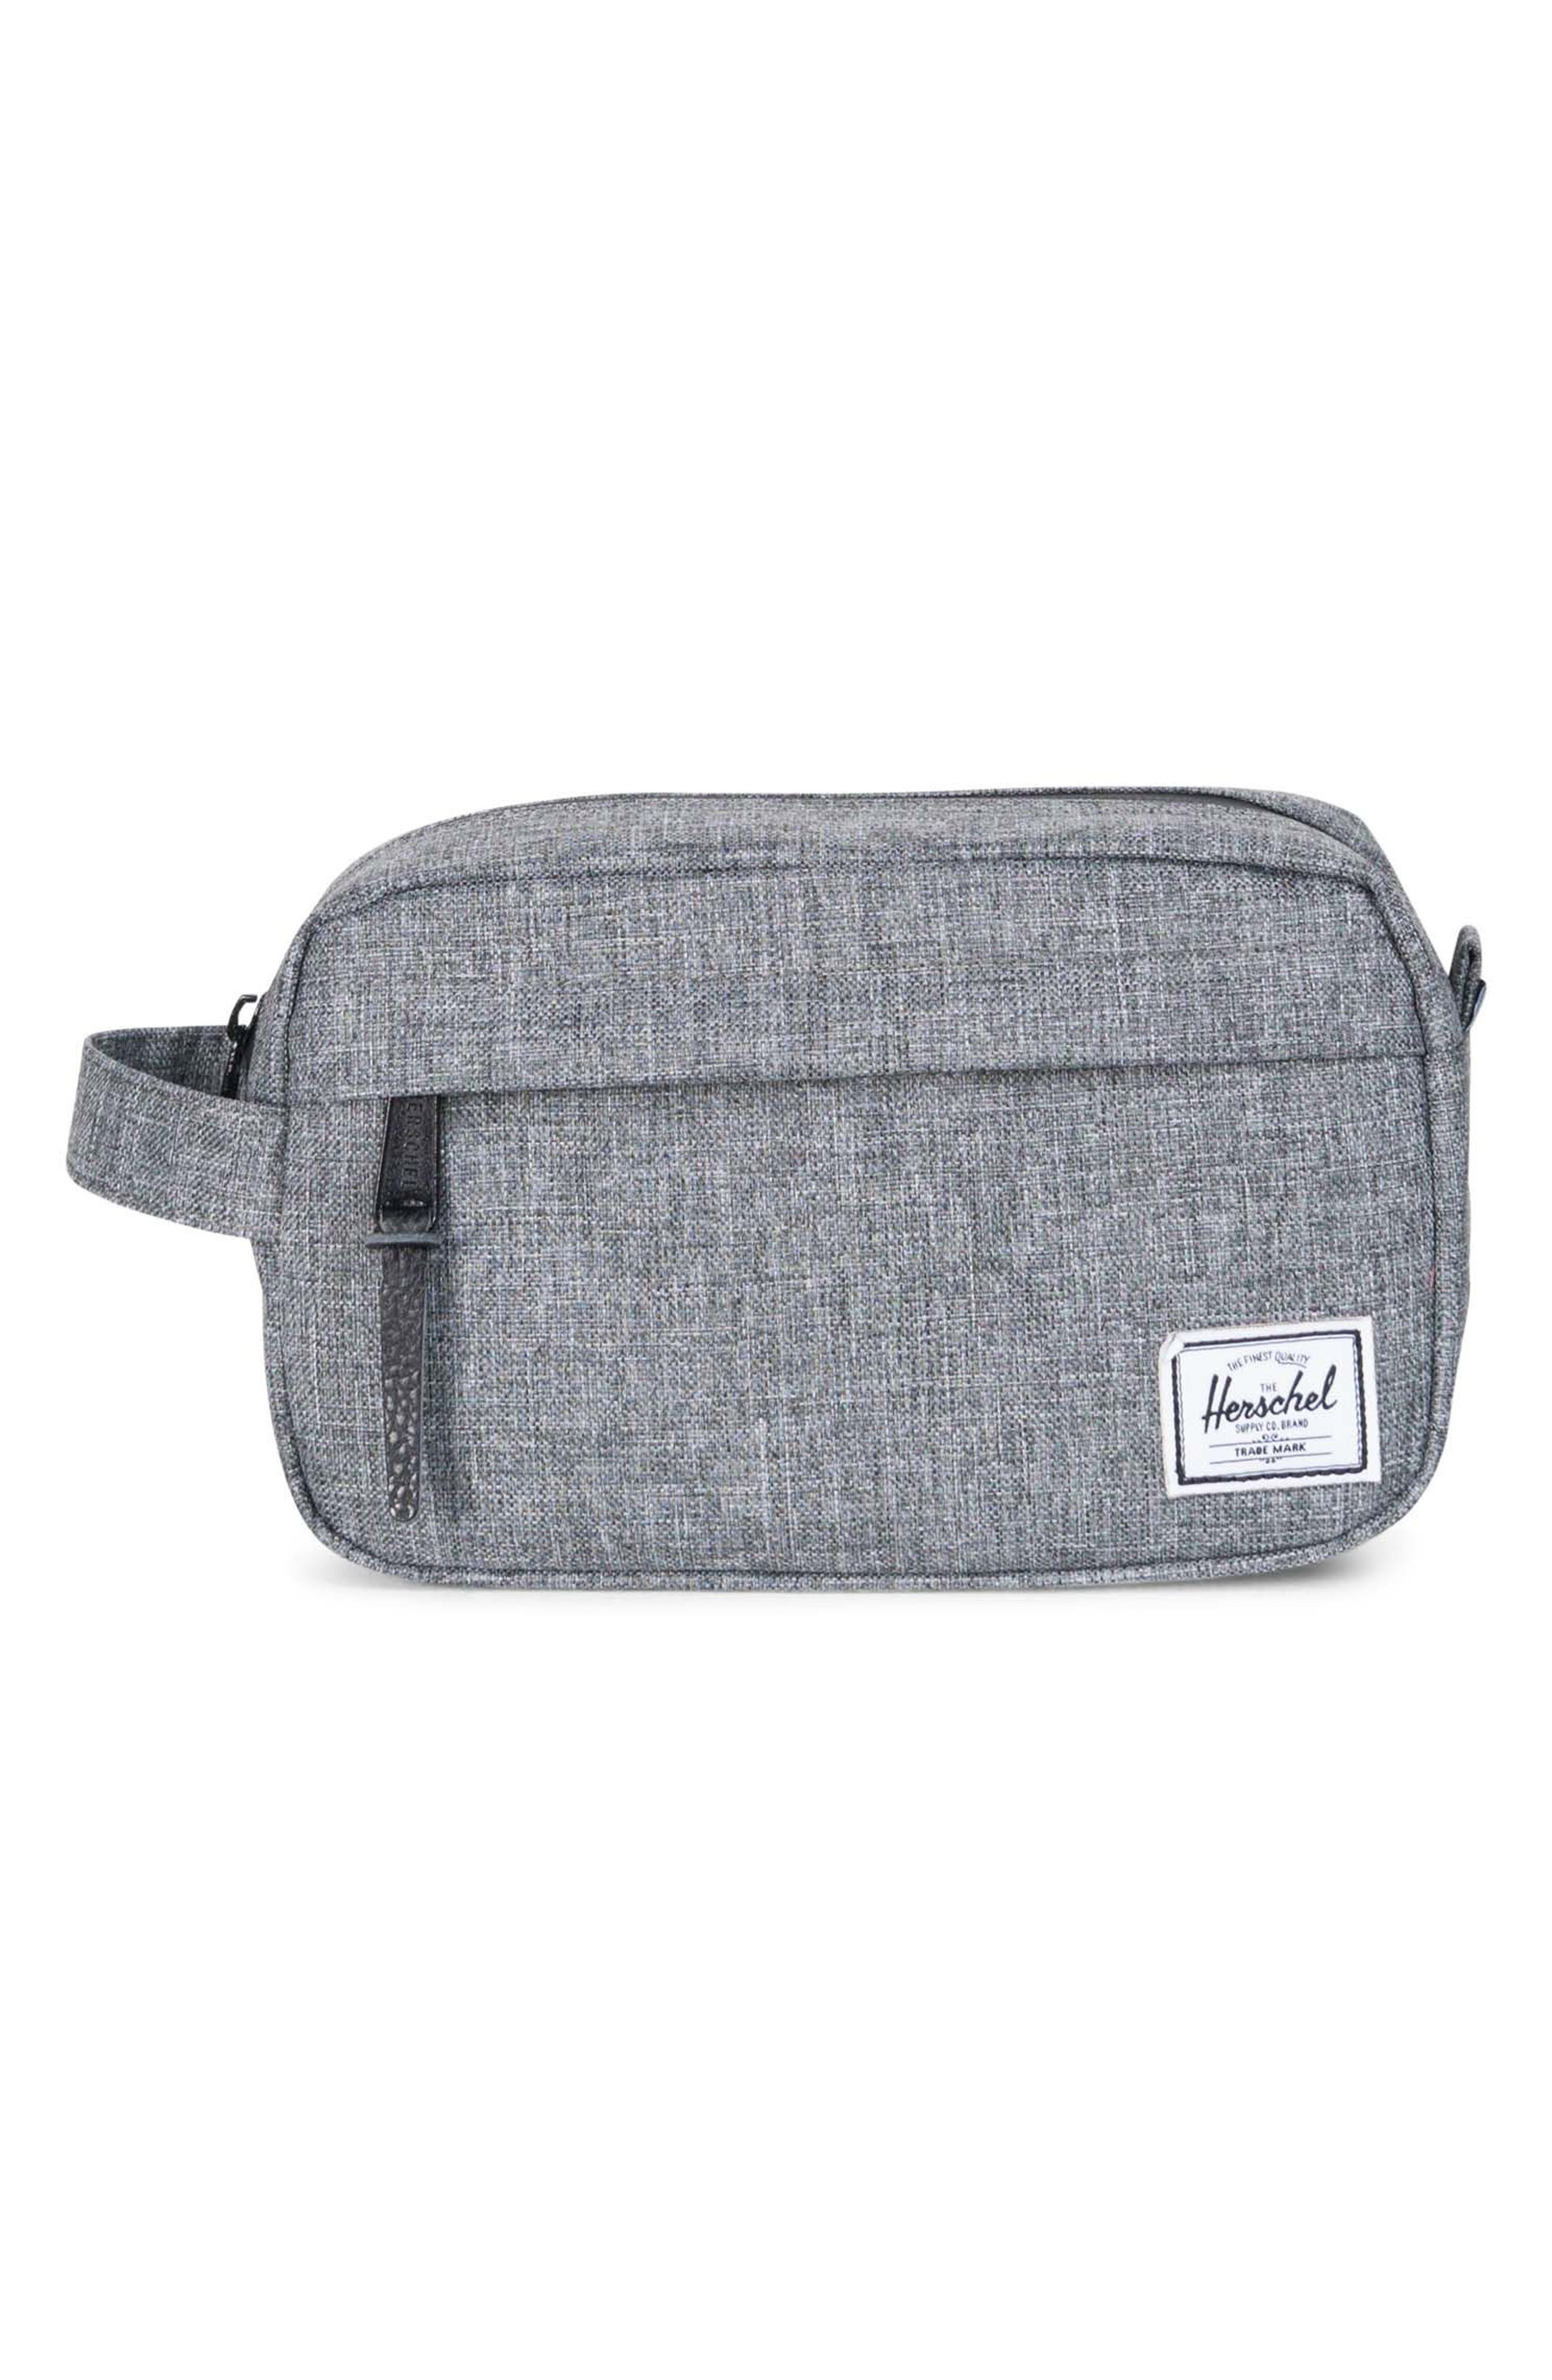 Chapter Carry-On Travel Kit,                         Main,                         color, Raven Crosshatch